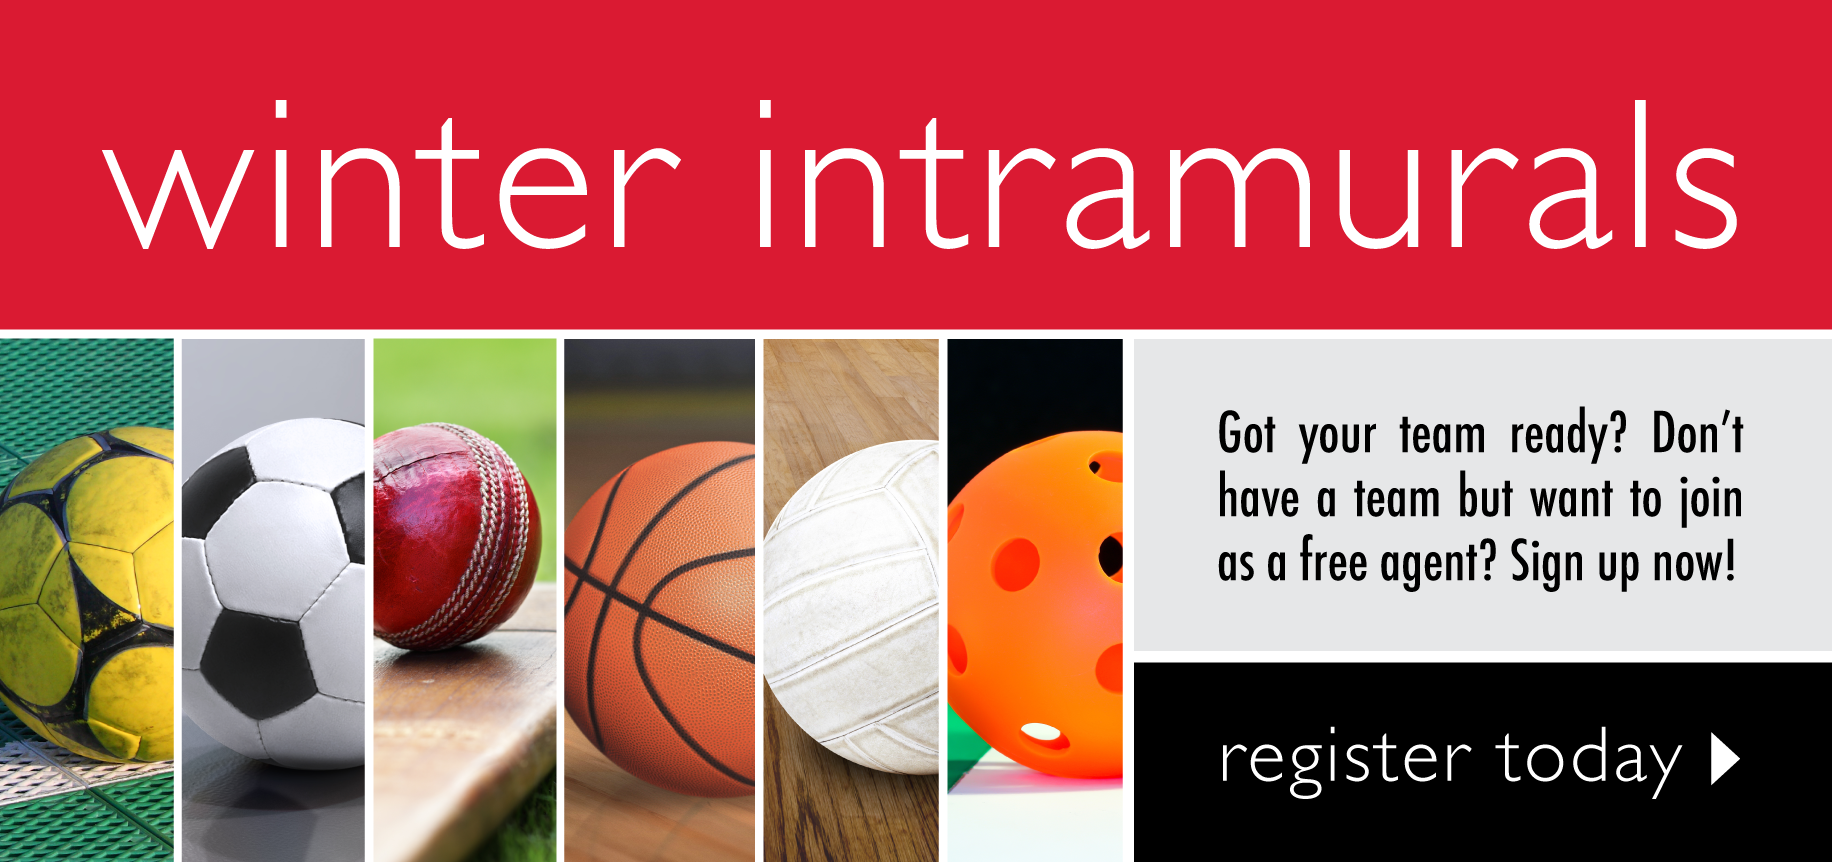 Rec_Intramurals_Winter_WebBanner_S20_KP